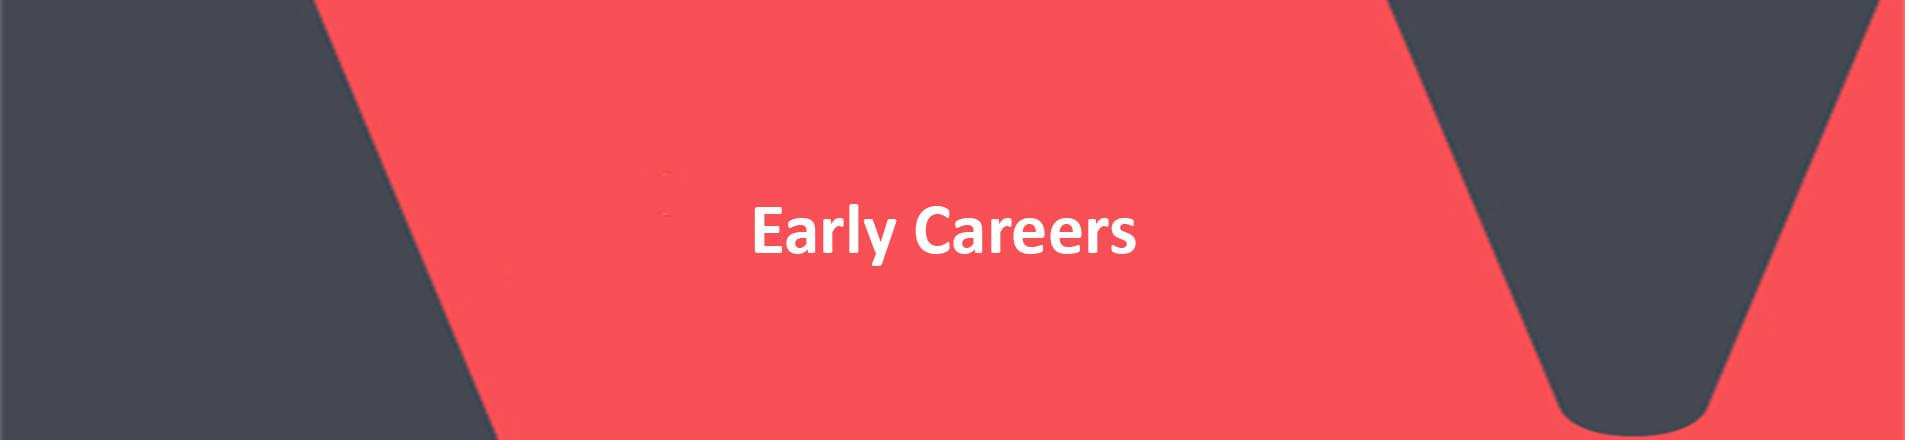 The words Early Careers in white on a red VERCIDA branded background